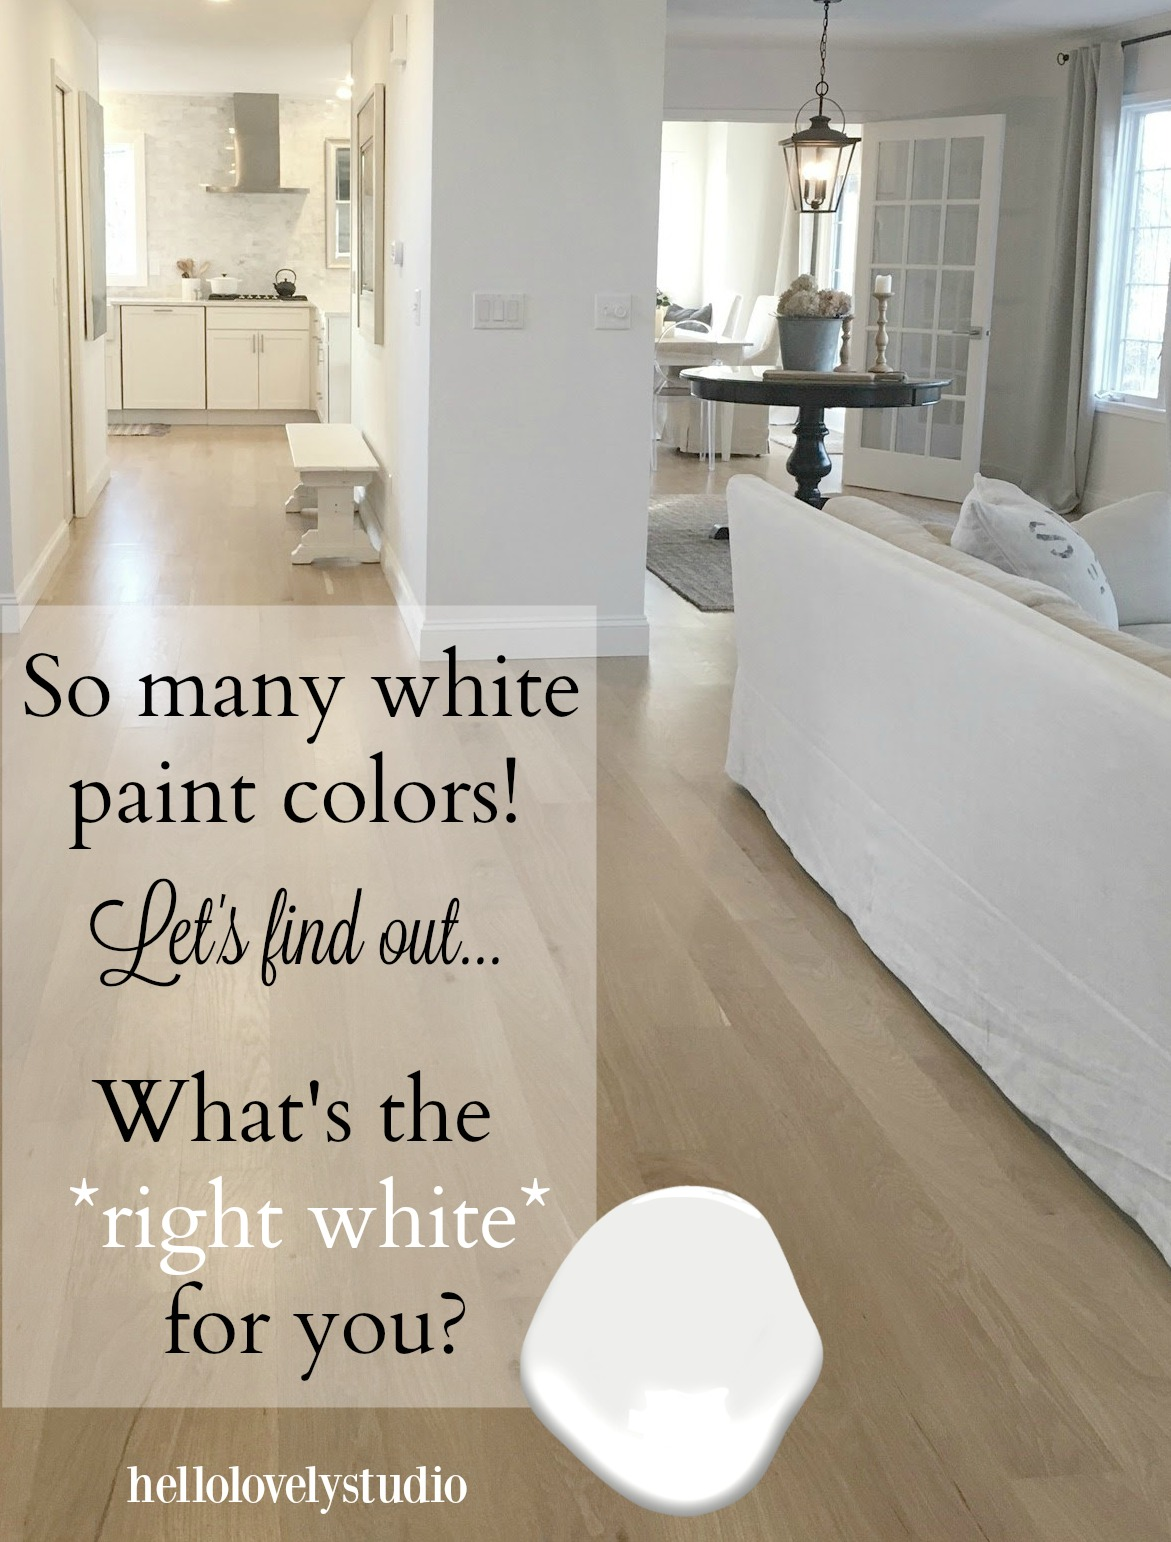 So many white paint colors! Let's find out what's the right white for you. Help for choosing the perfect white paint color for your walls from design experts on Hello Lovely Studio